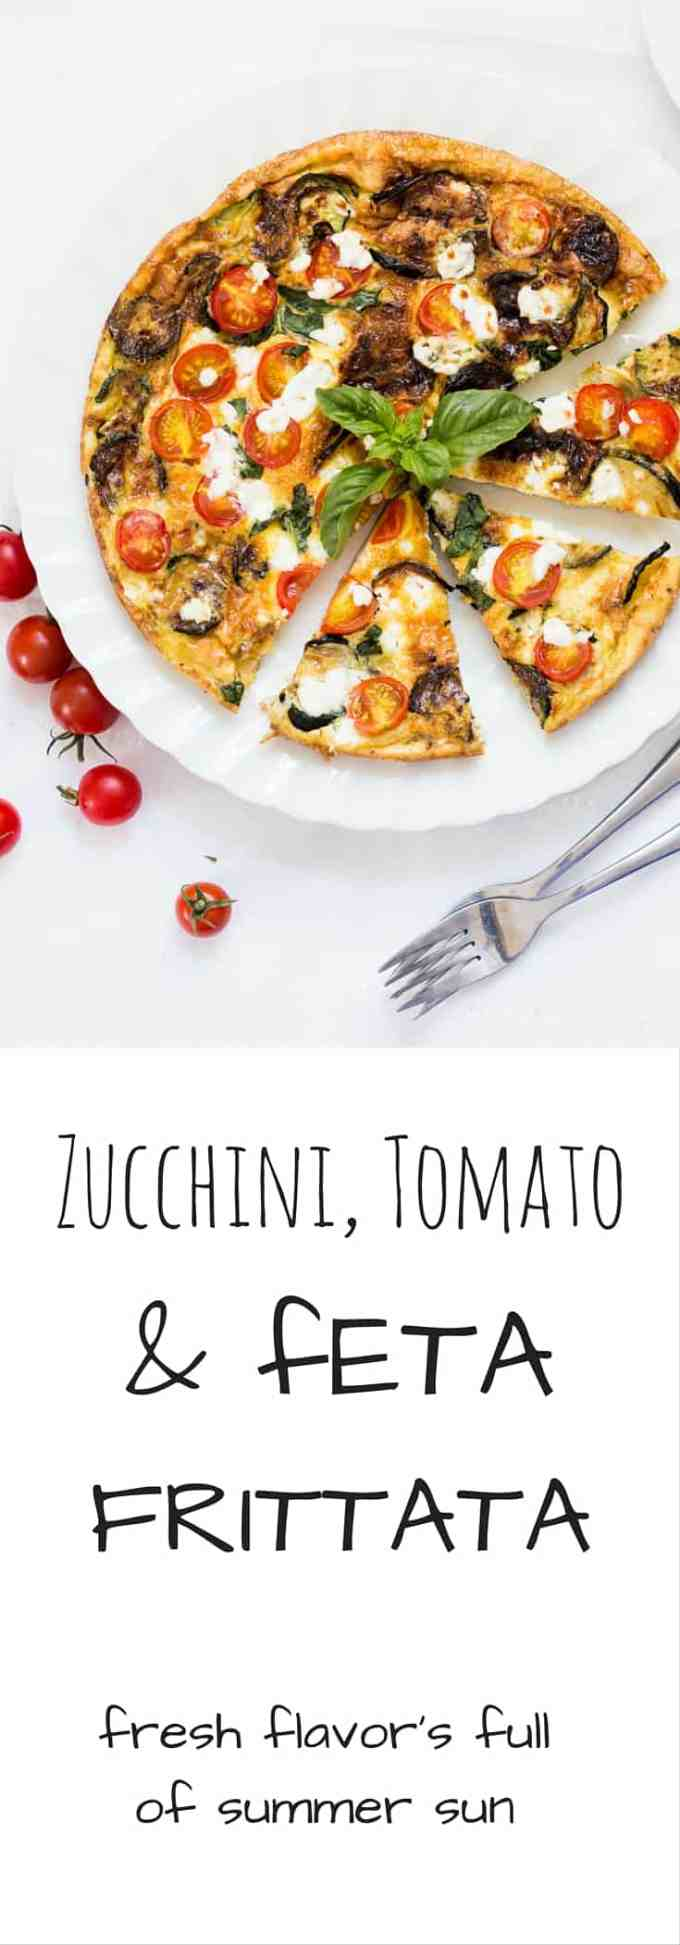 Zucchini Tomato and Feta Frittata. The perfect quick and easy dish to put together on a hot summer's day. Light and bursting with the flavor of summer produce